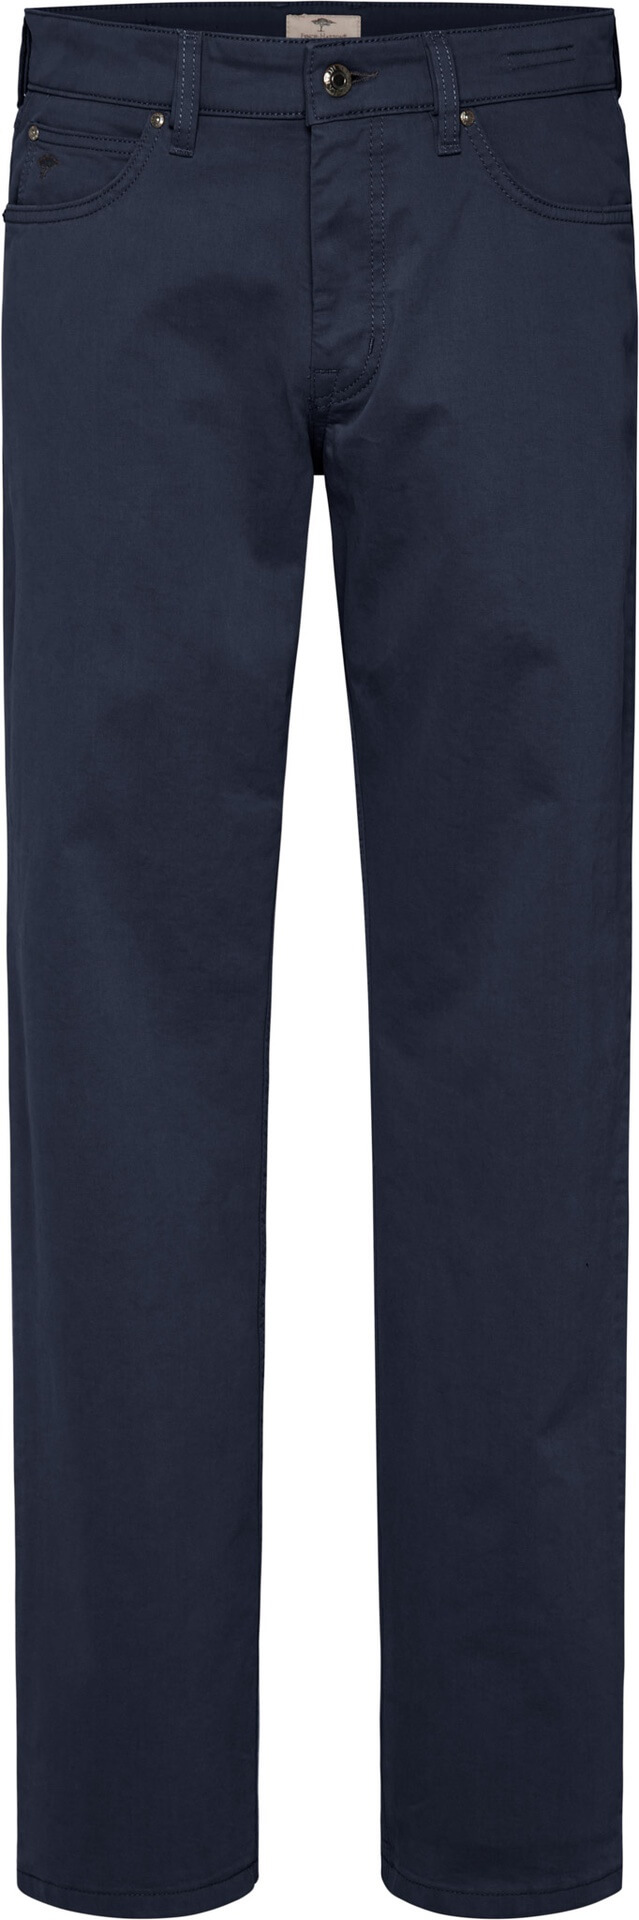 Fynch Hatton Navy Trousers